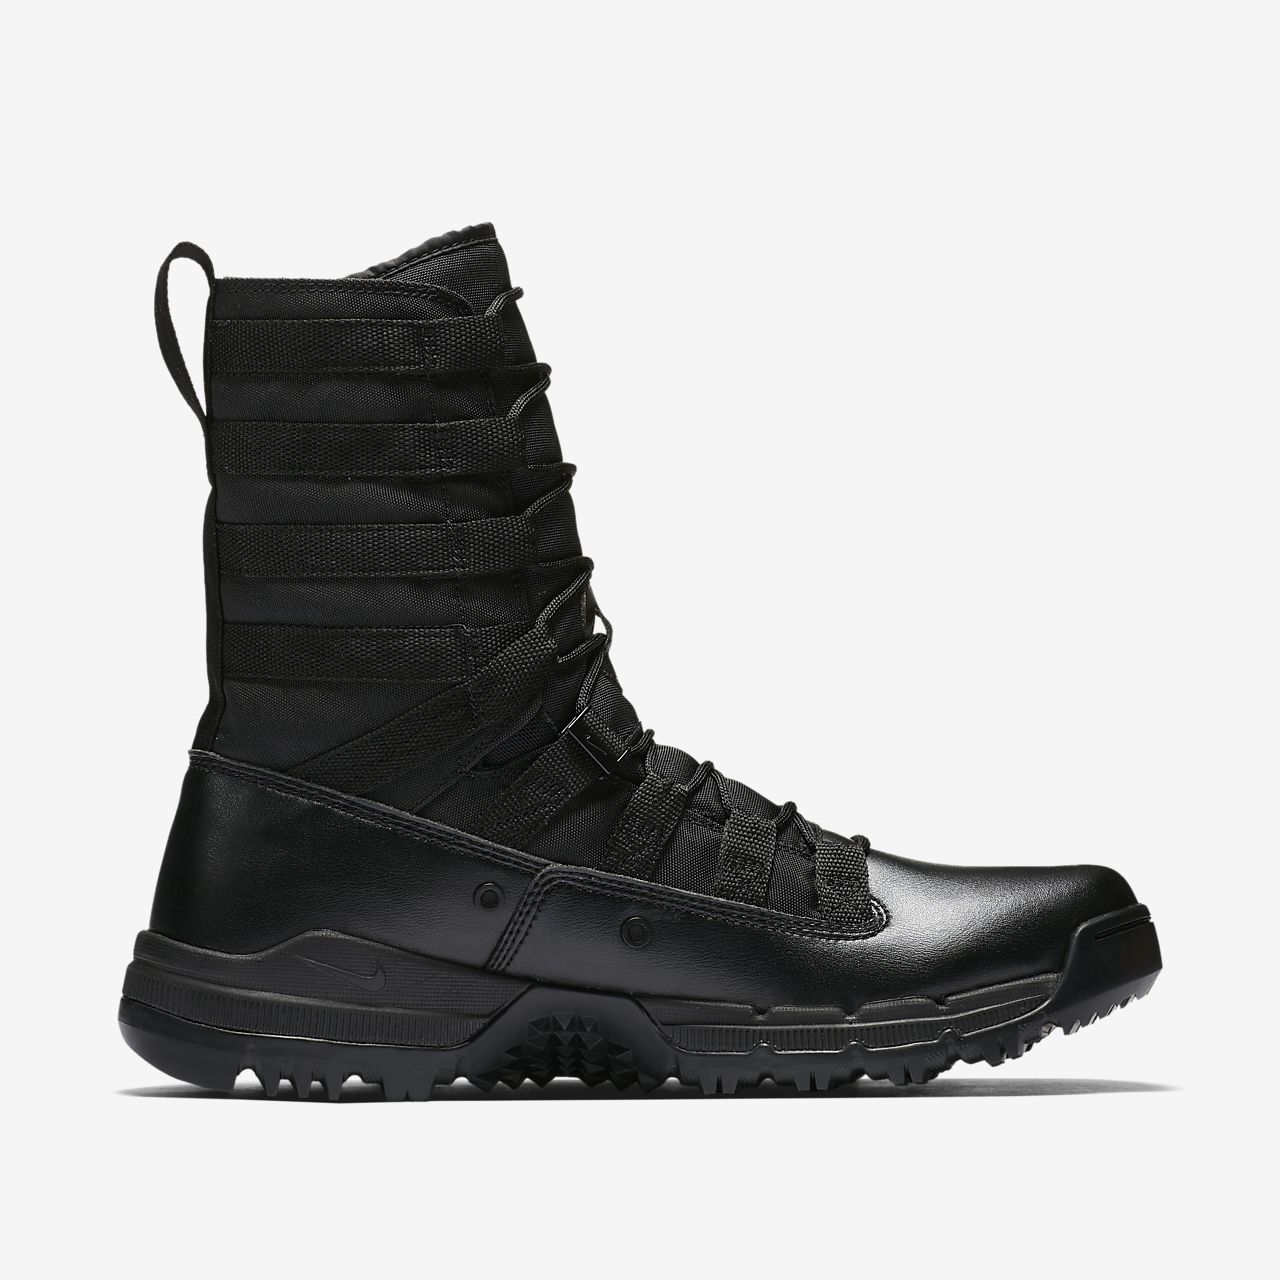 Nike SFB Gen 2 20.5cm (approx.) Men's Unisex Boots Grey/White dP2305O